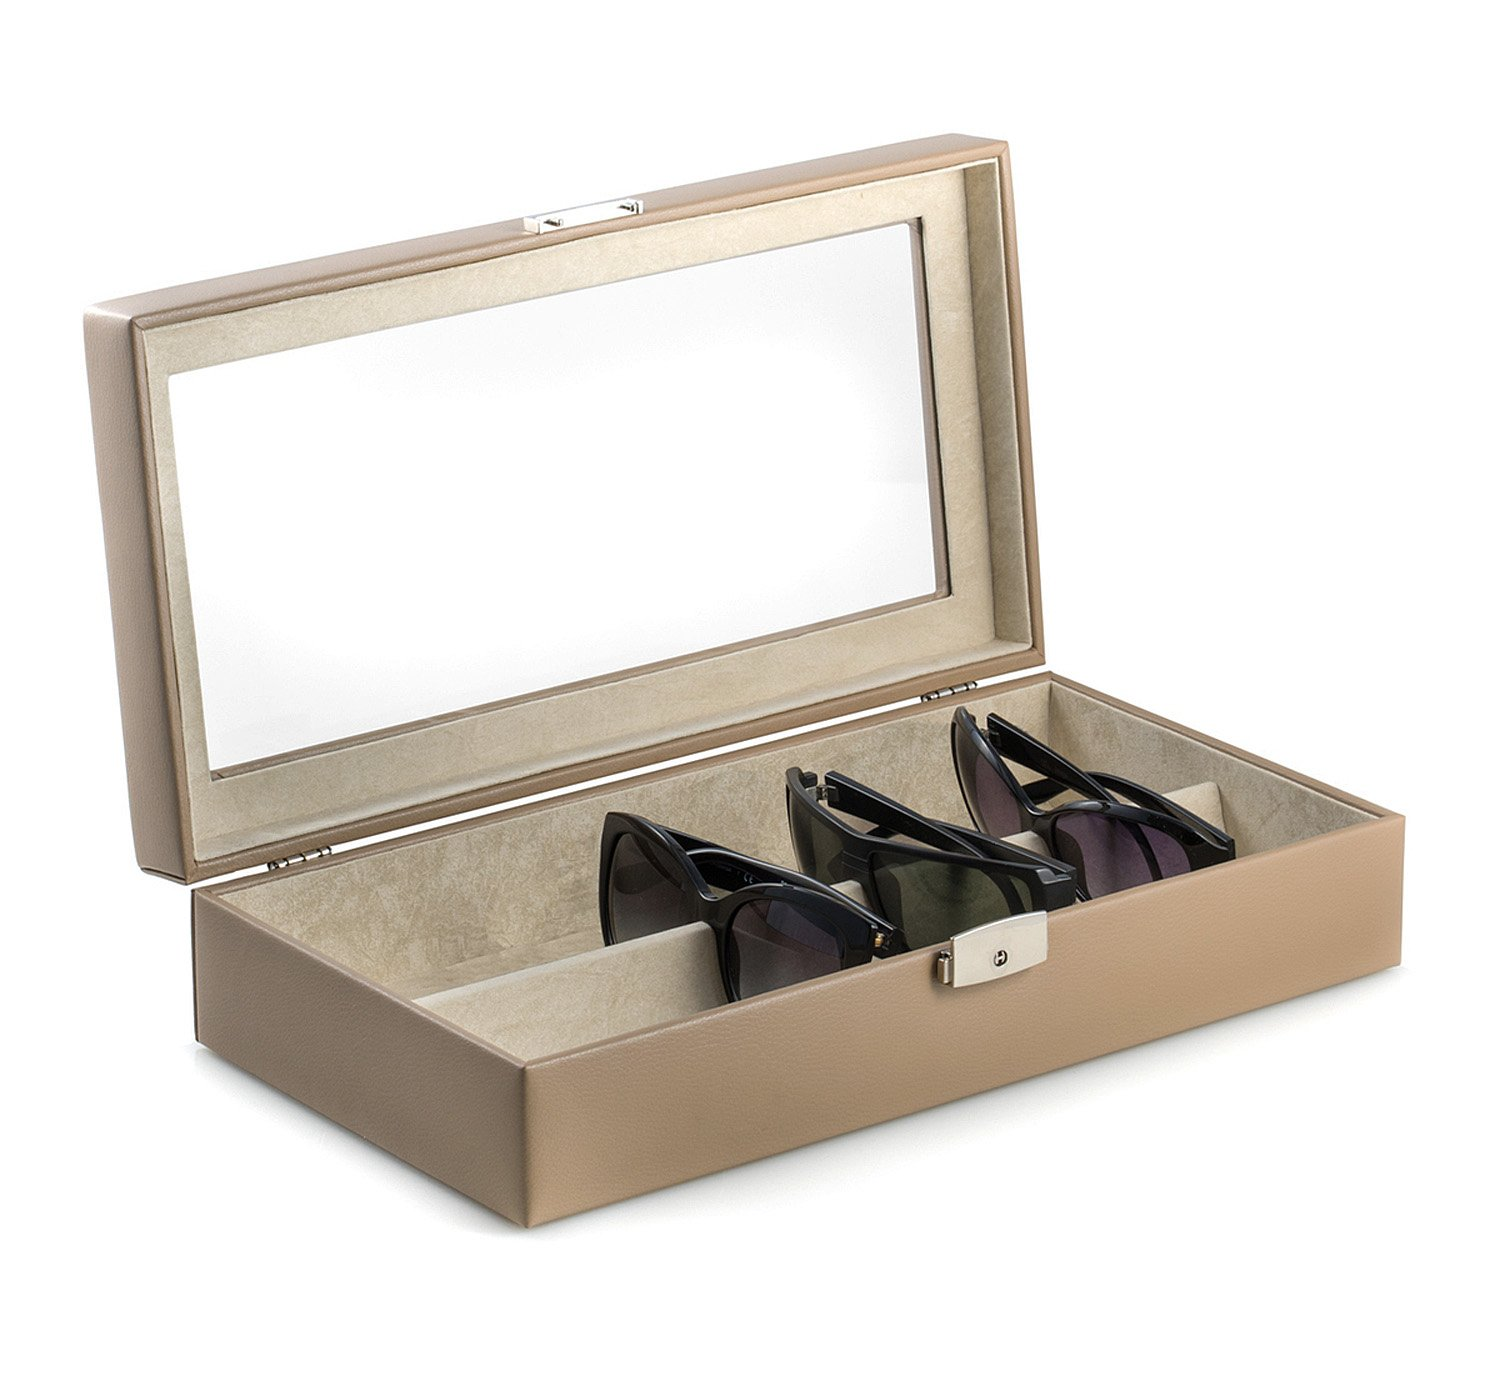 Eyeglass Cases - ''St Regis'' Eyeglass Case - Taupe Leather - Glass Case - Vision Care